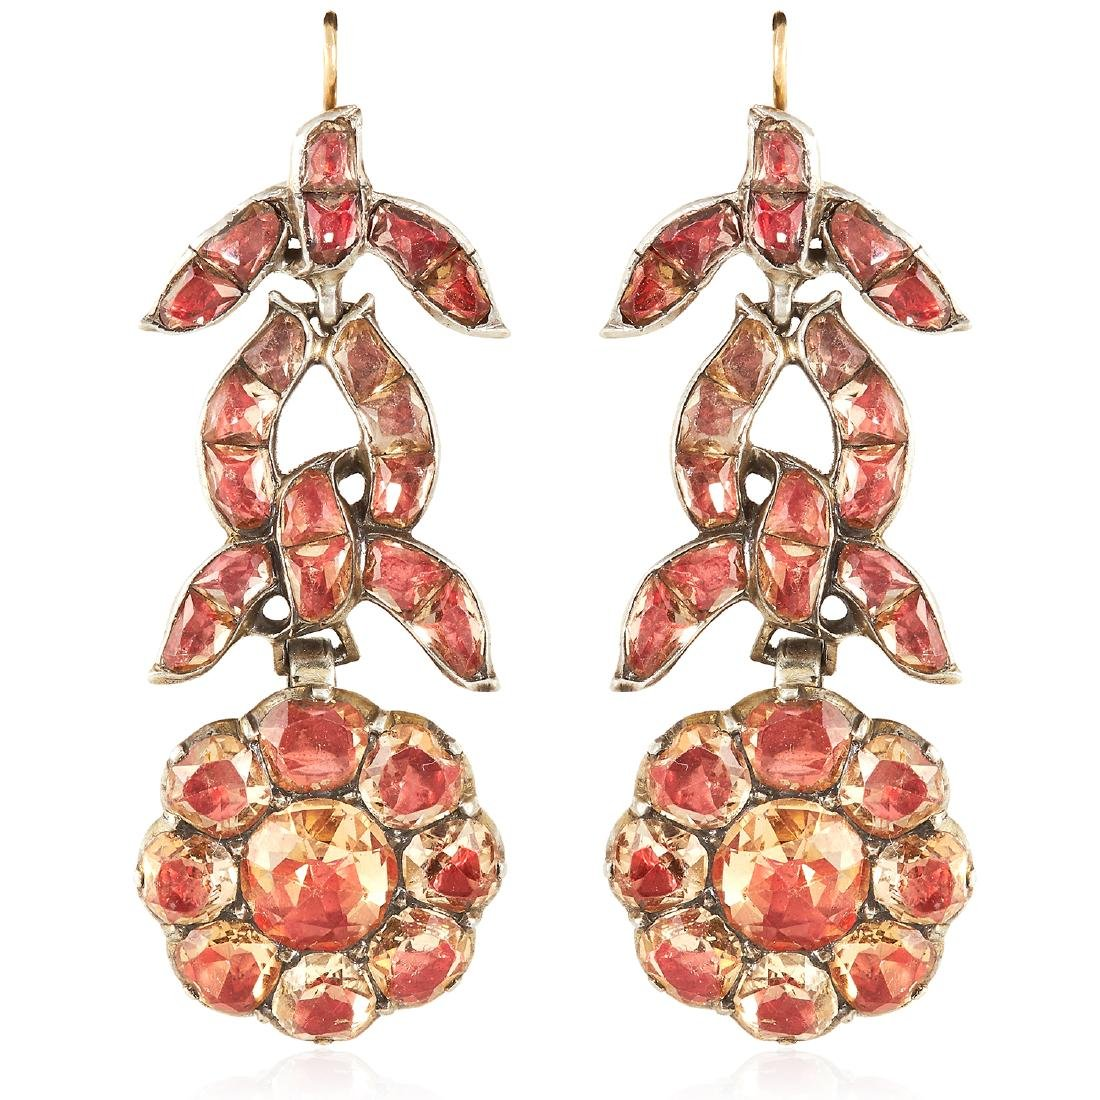 A PAIR OF ANTIQUE IMPERIAL TOPAZ EARRINGS, PORTUGUESE,